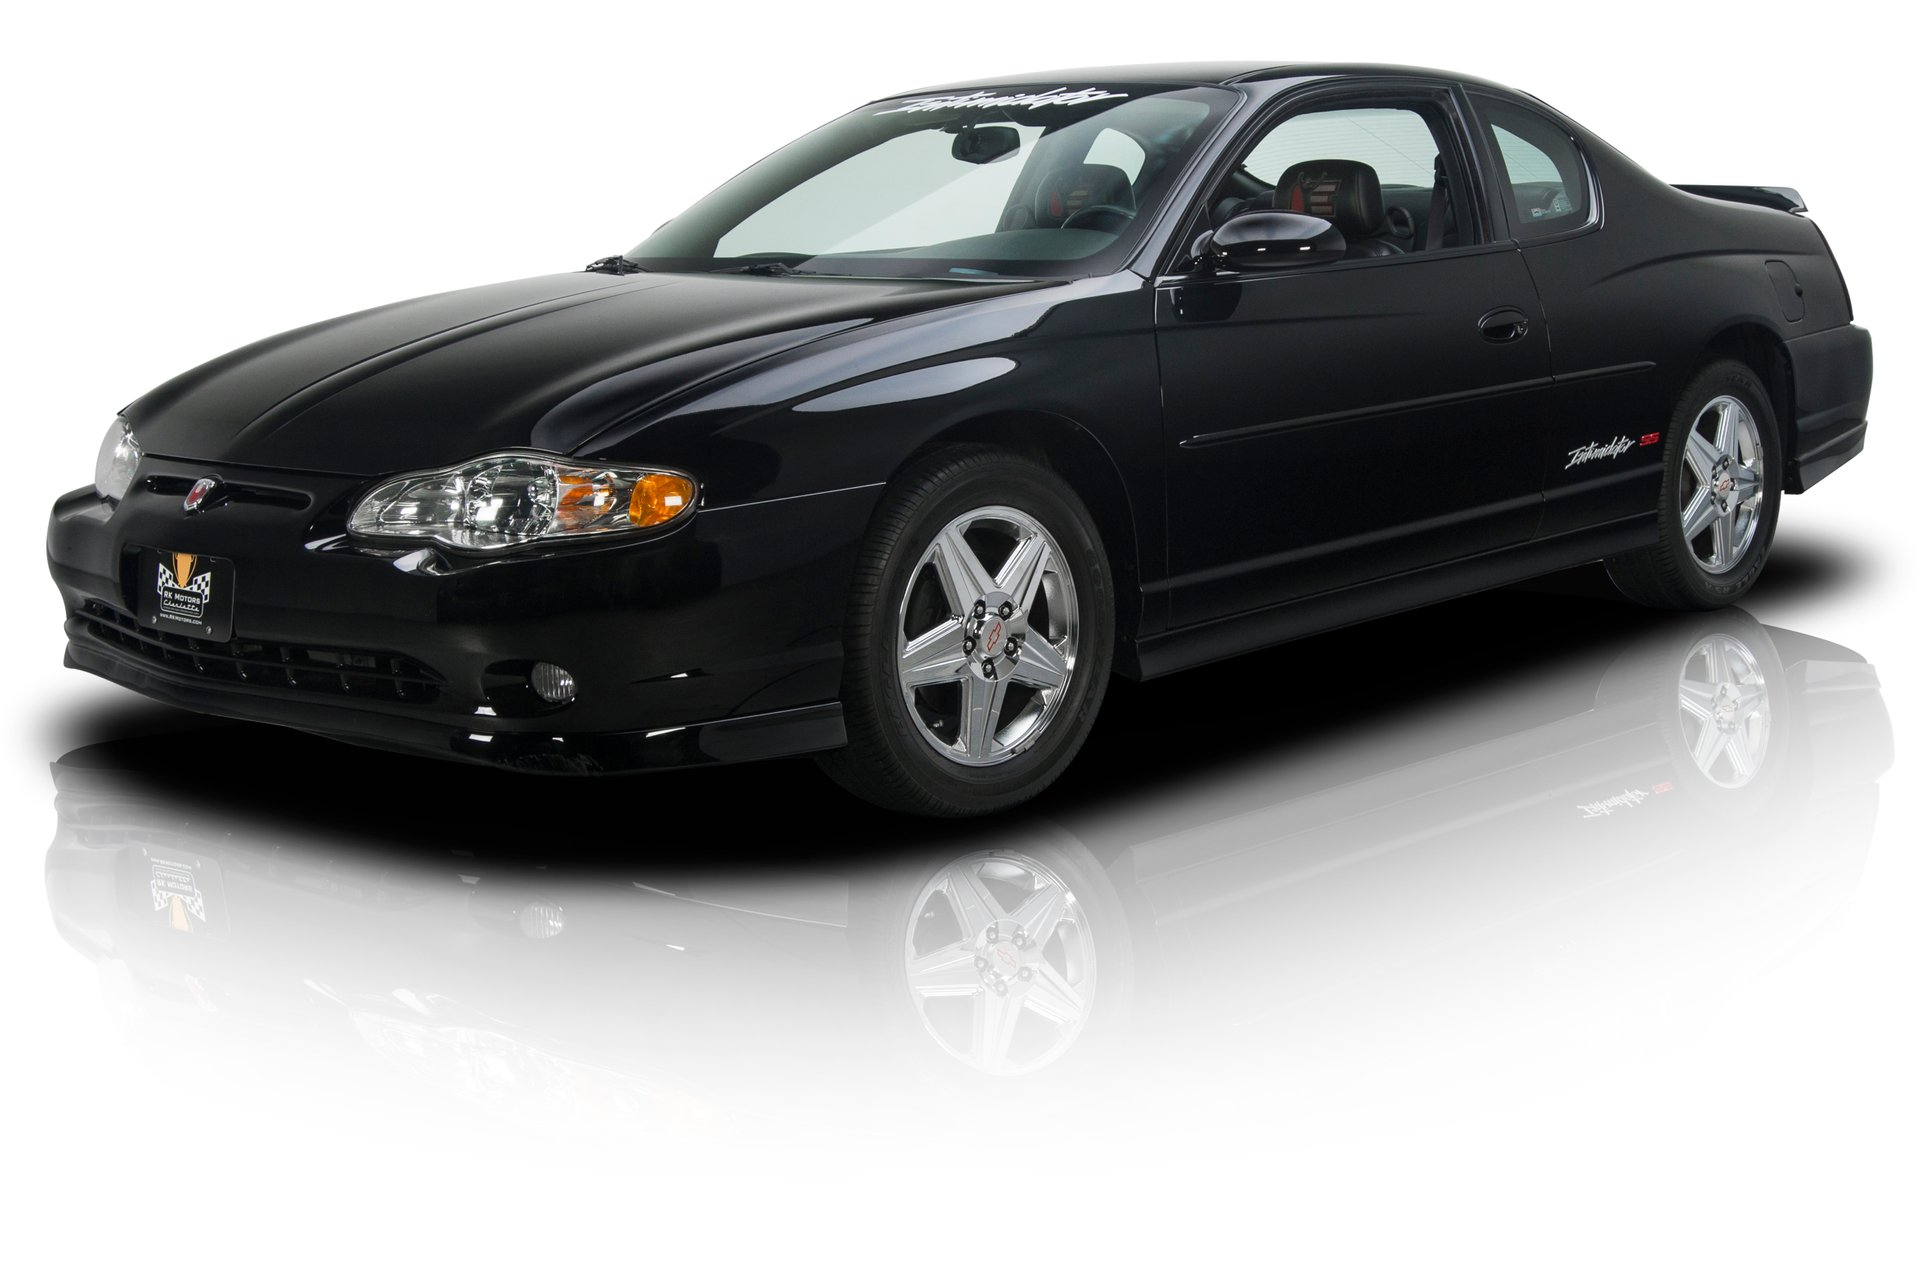 hight resolution of 6 522 actual mile monte carlo intimidator ss supercharged l67 v6 4 speed auto ac